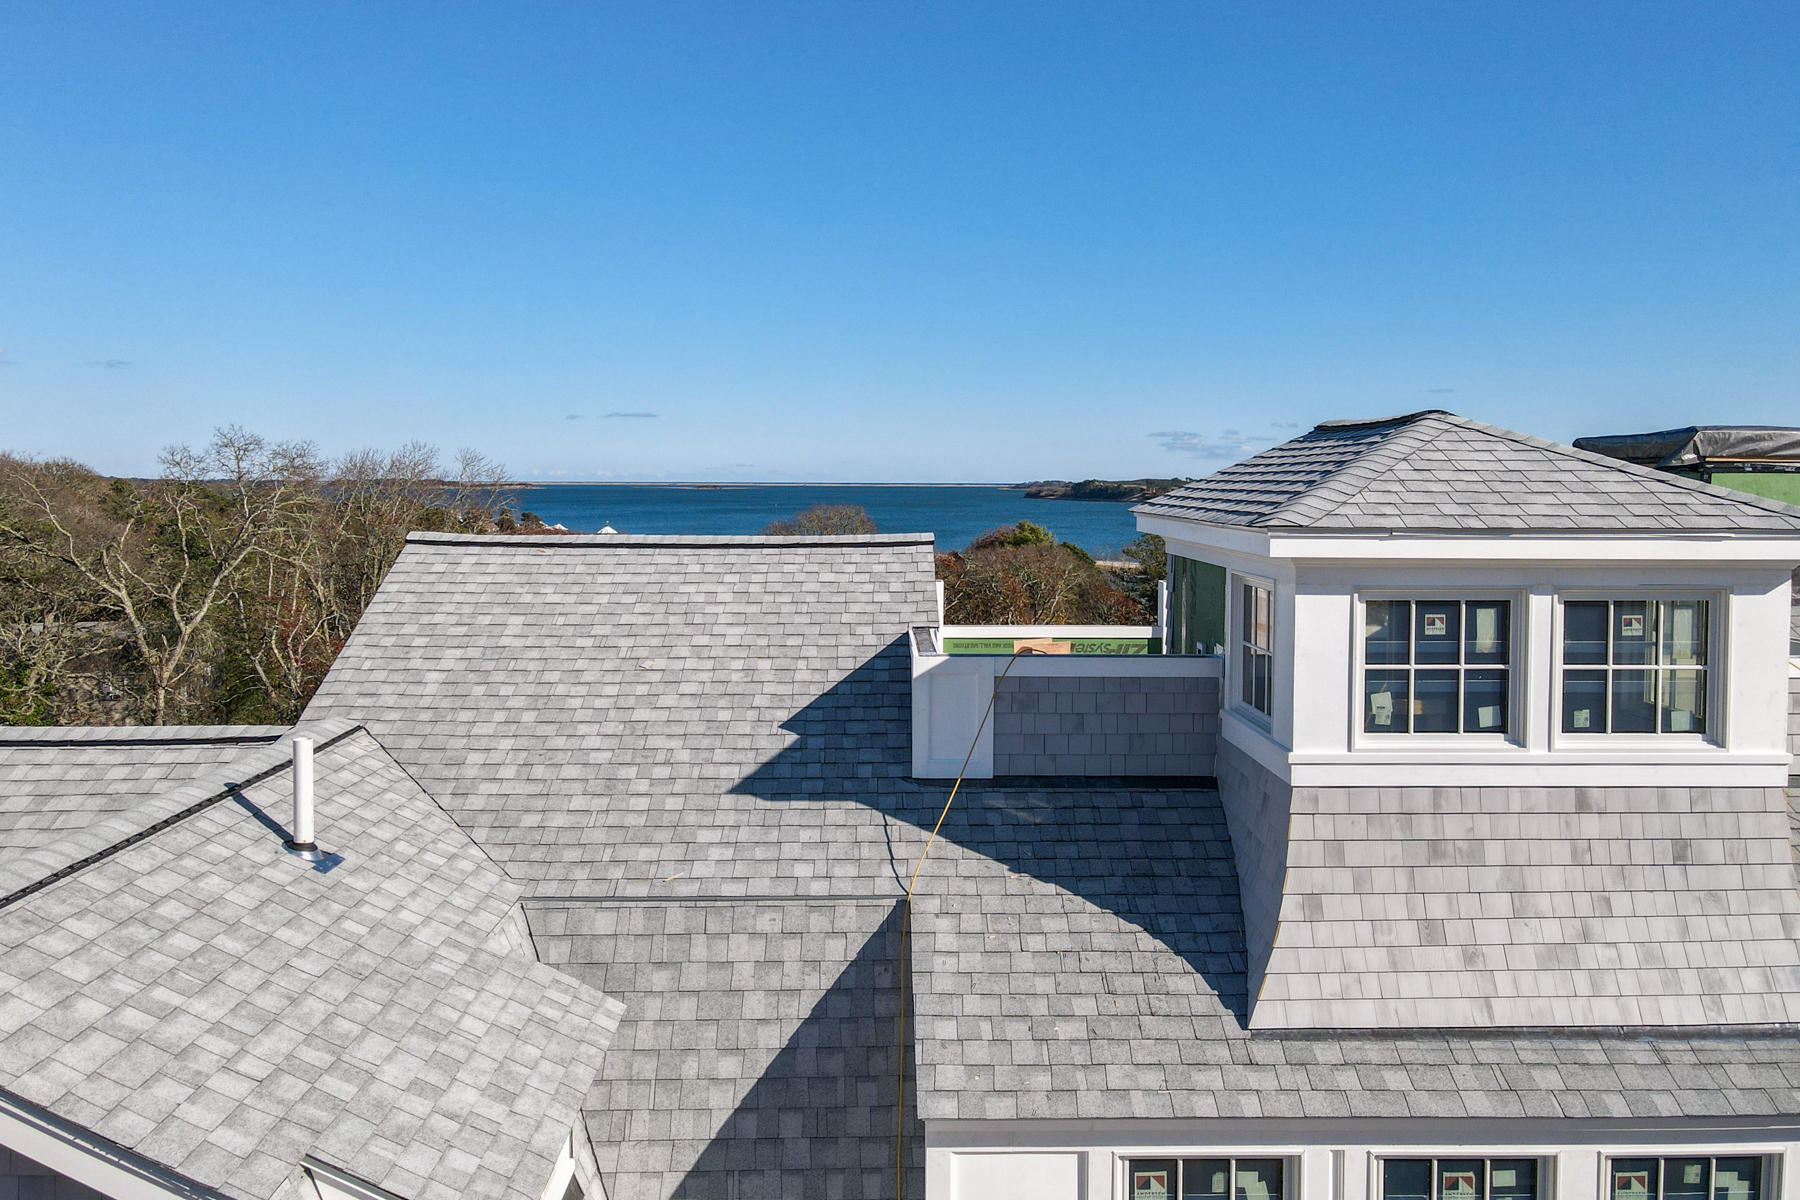 20 Mariner Drive, Harwich, MA photo 5